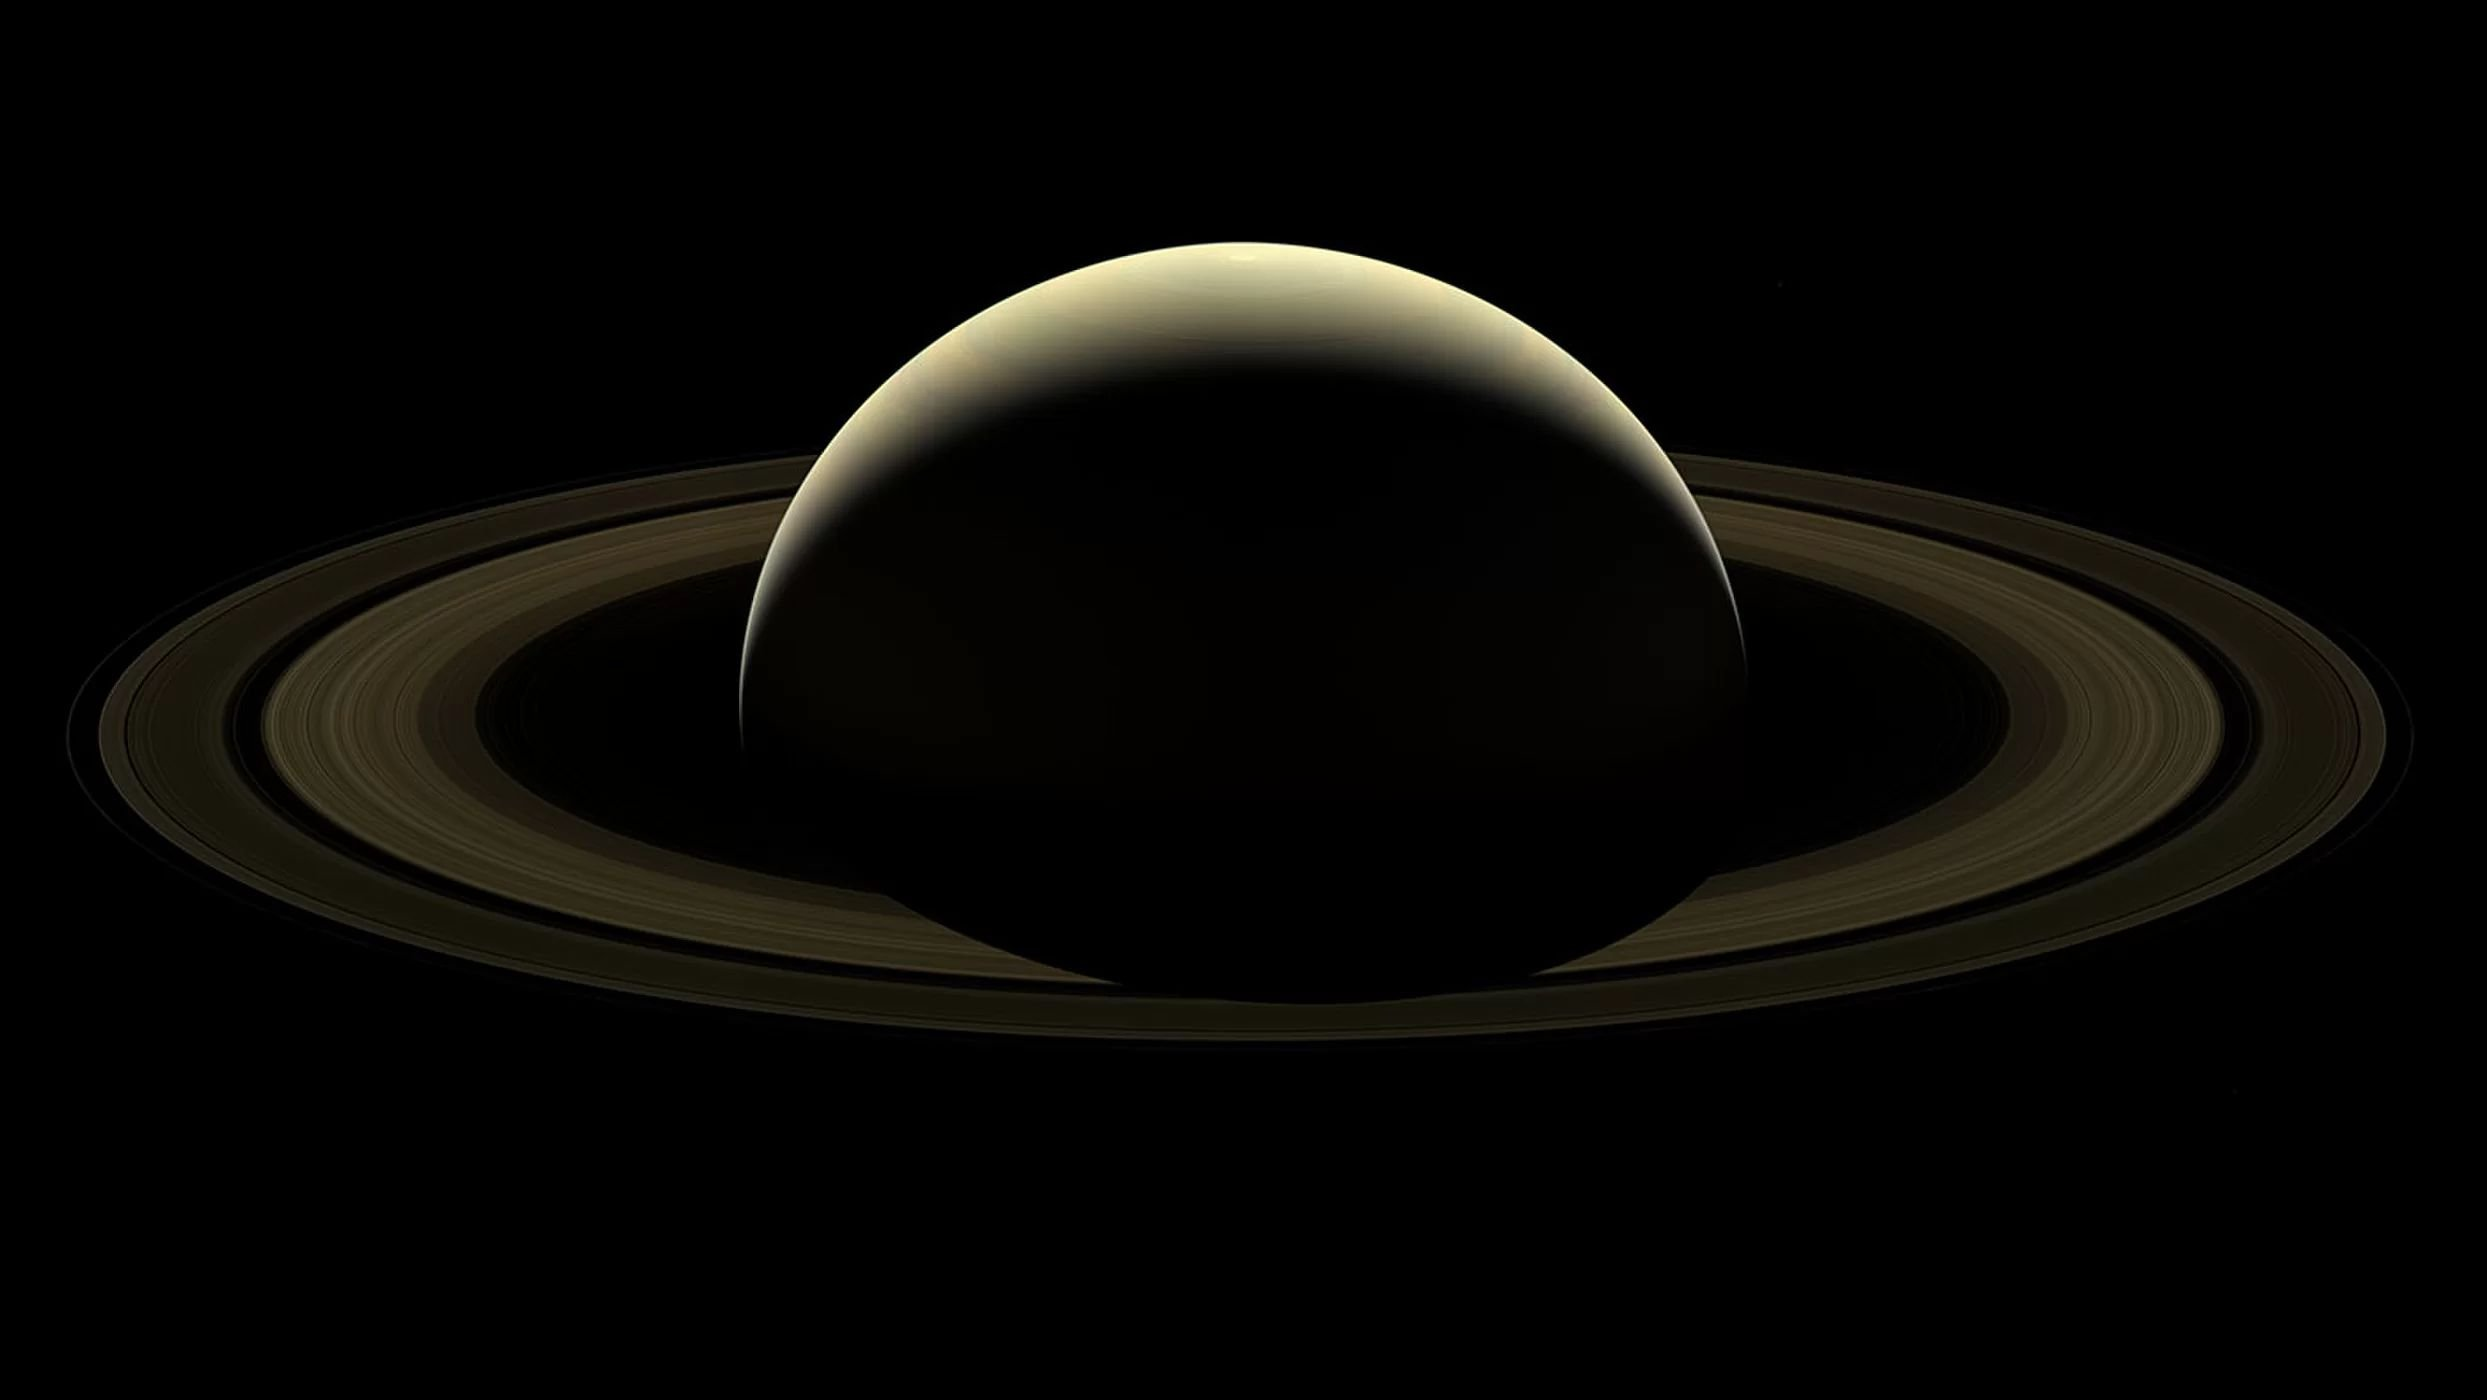 The Most Beautiful Pictures Of Saturn Ever Taken Courtesy